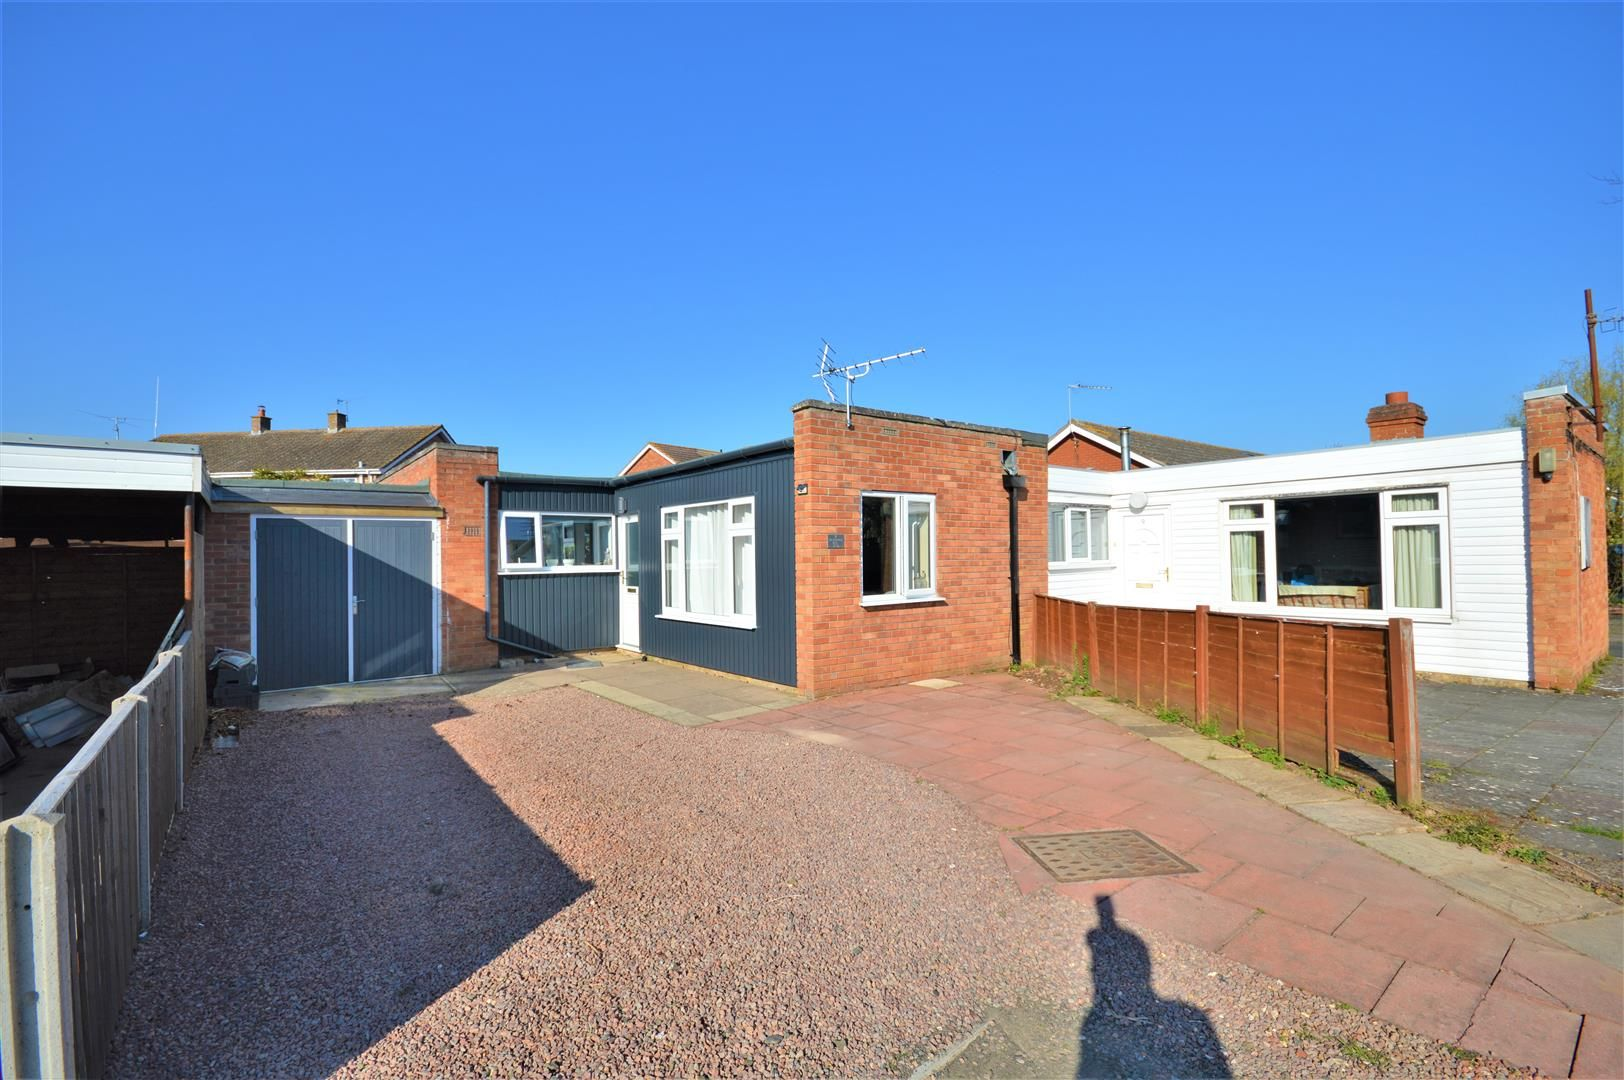 2 bed semi-detached-bungalow for sale in Marden  - Property Image 1